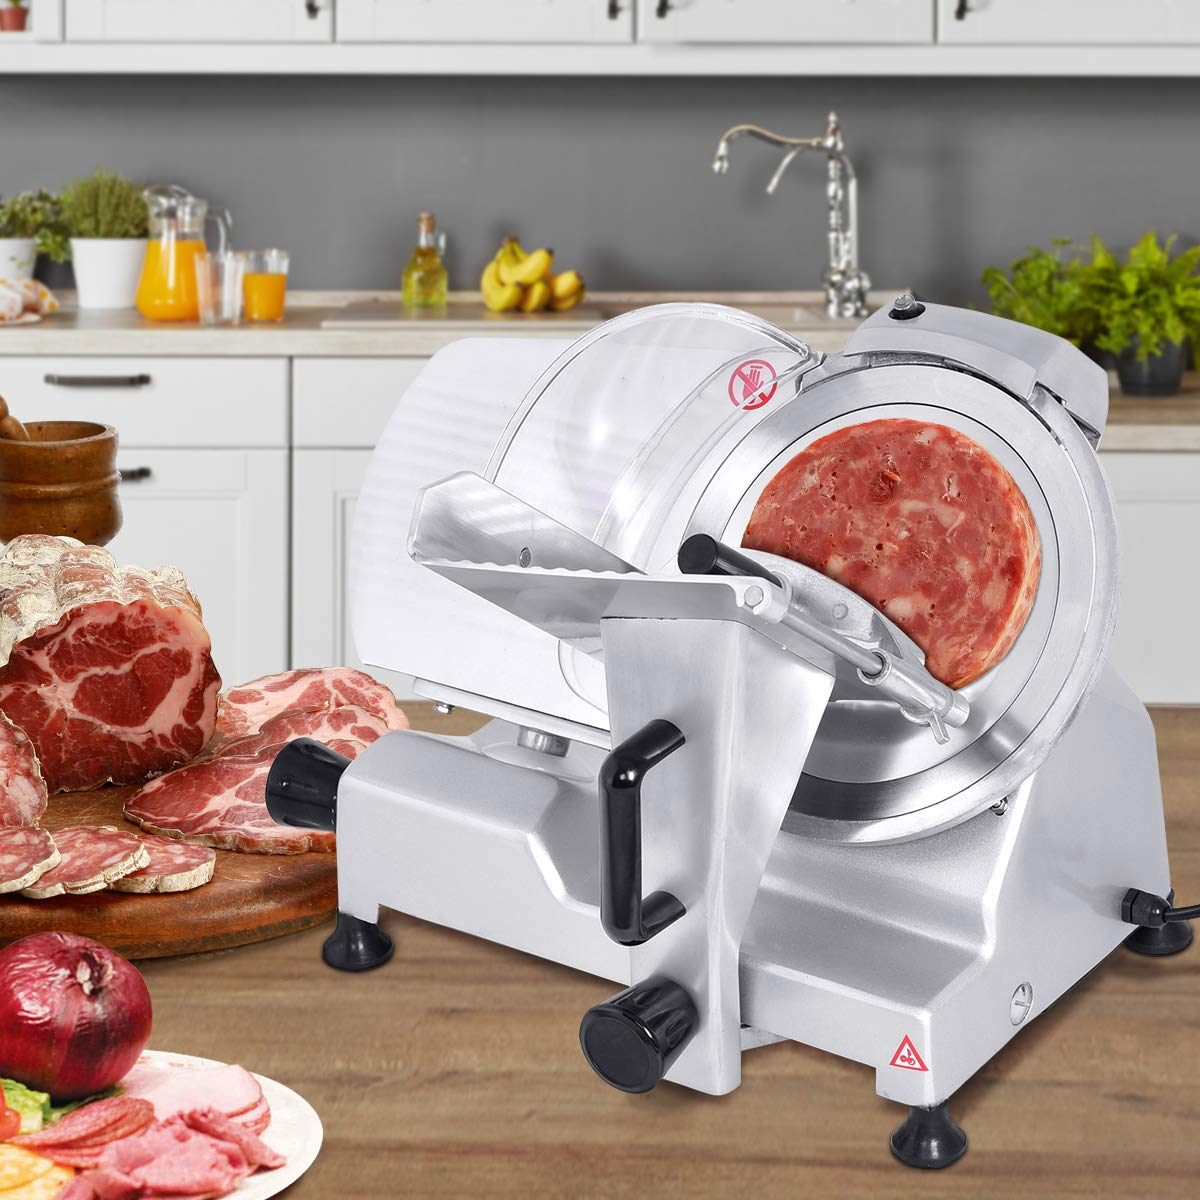 Giantex 10 Blade Commercial Meat Slicer Deli Meat Cheese Food Slicer Industrial Quality